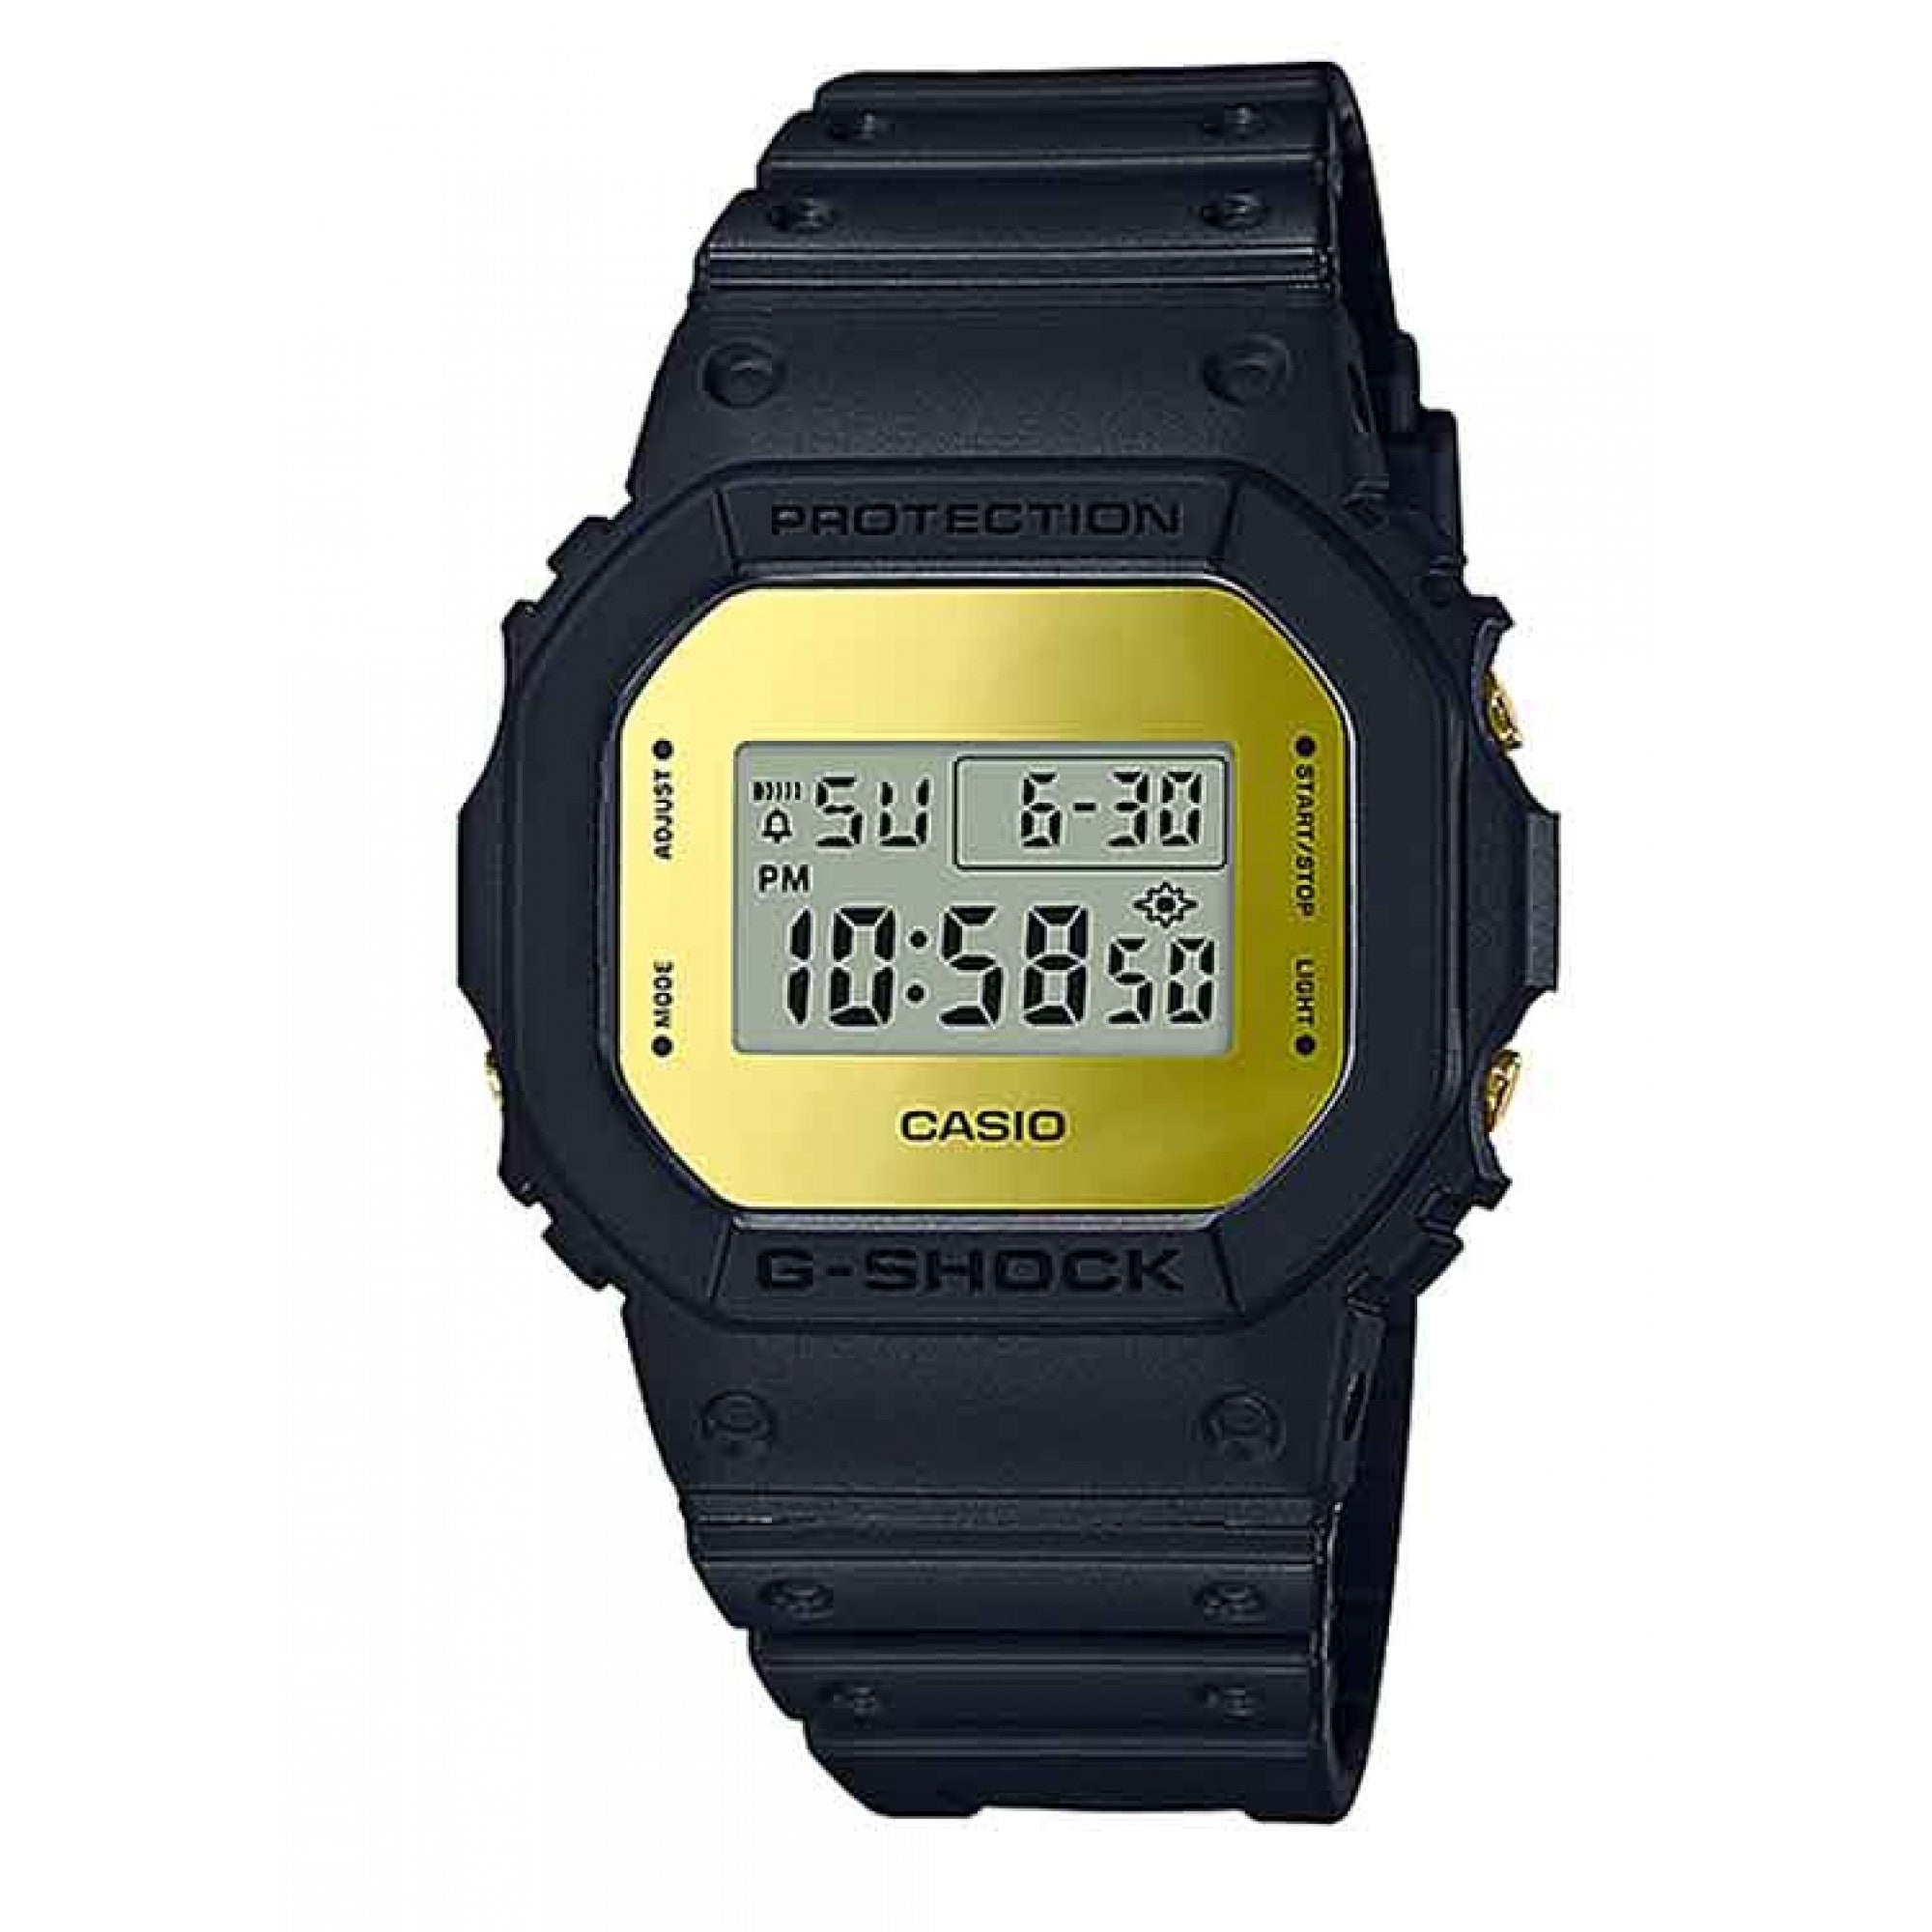 G-Shock DW-5600BBMB with gold mirror dial